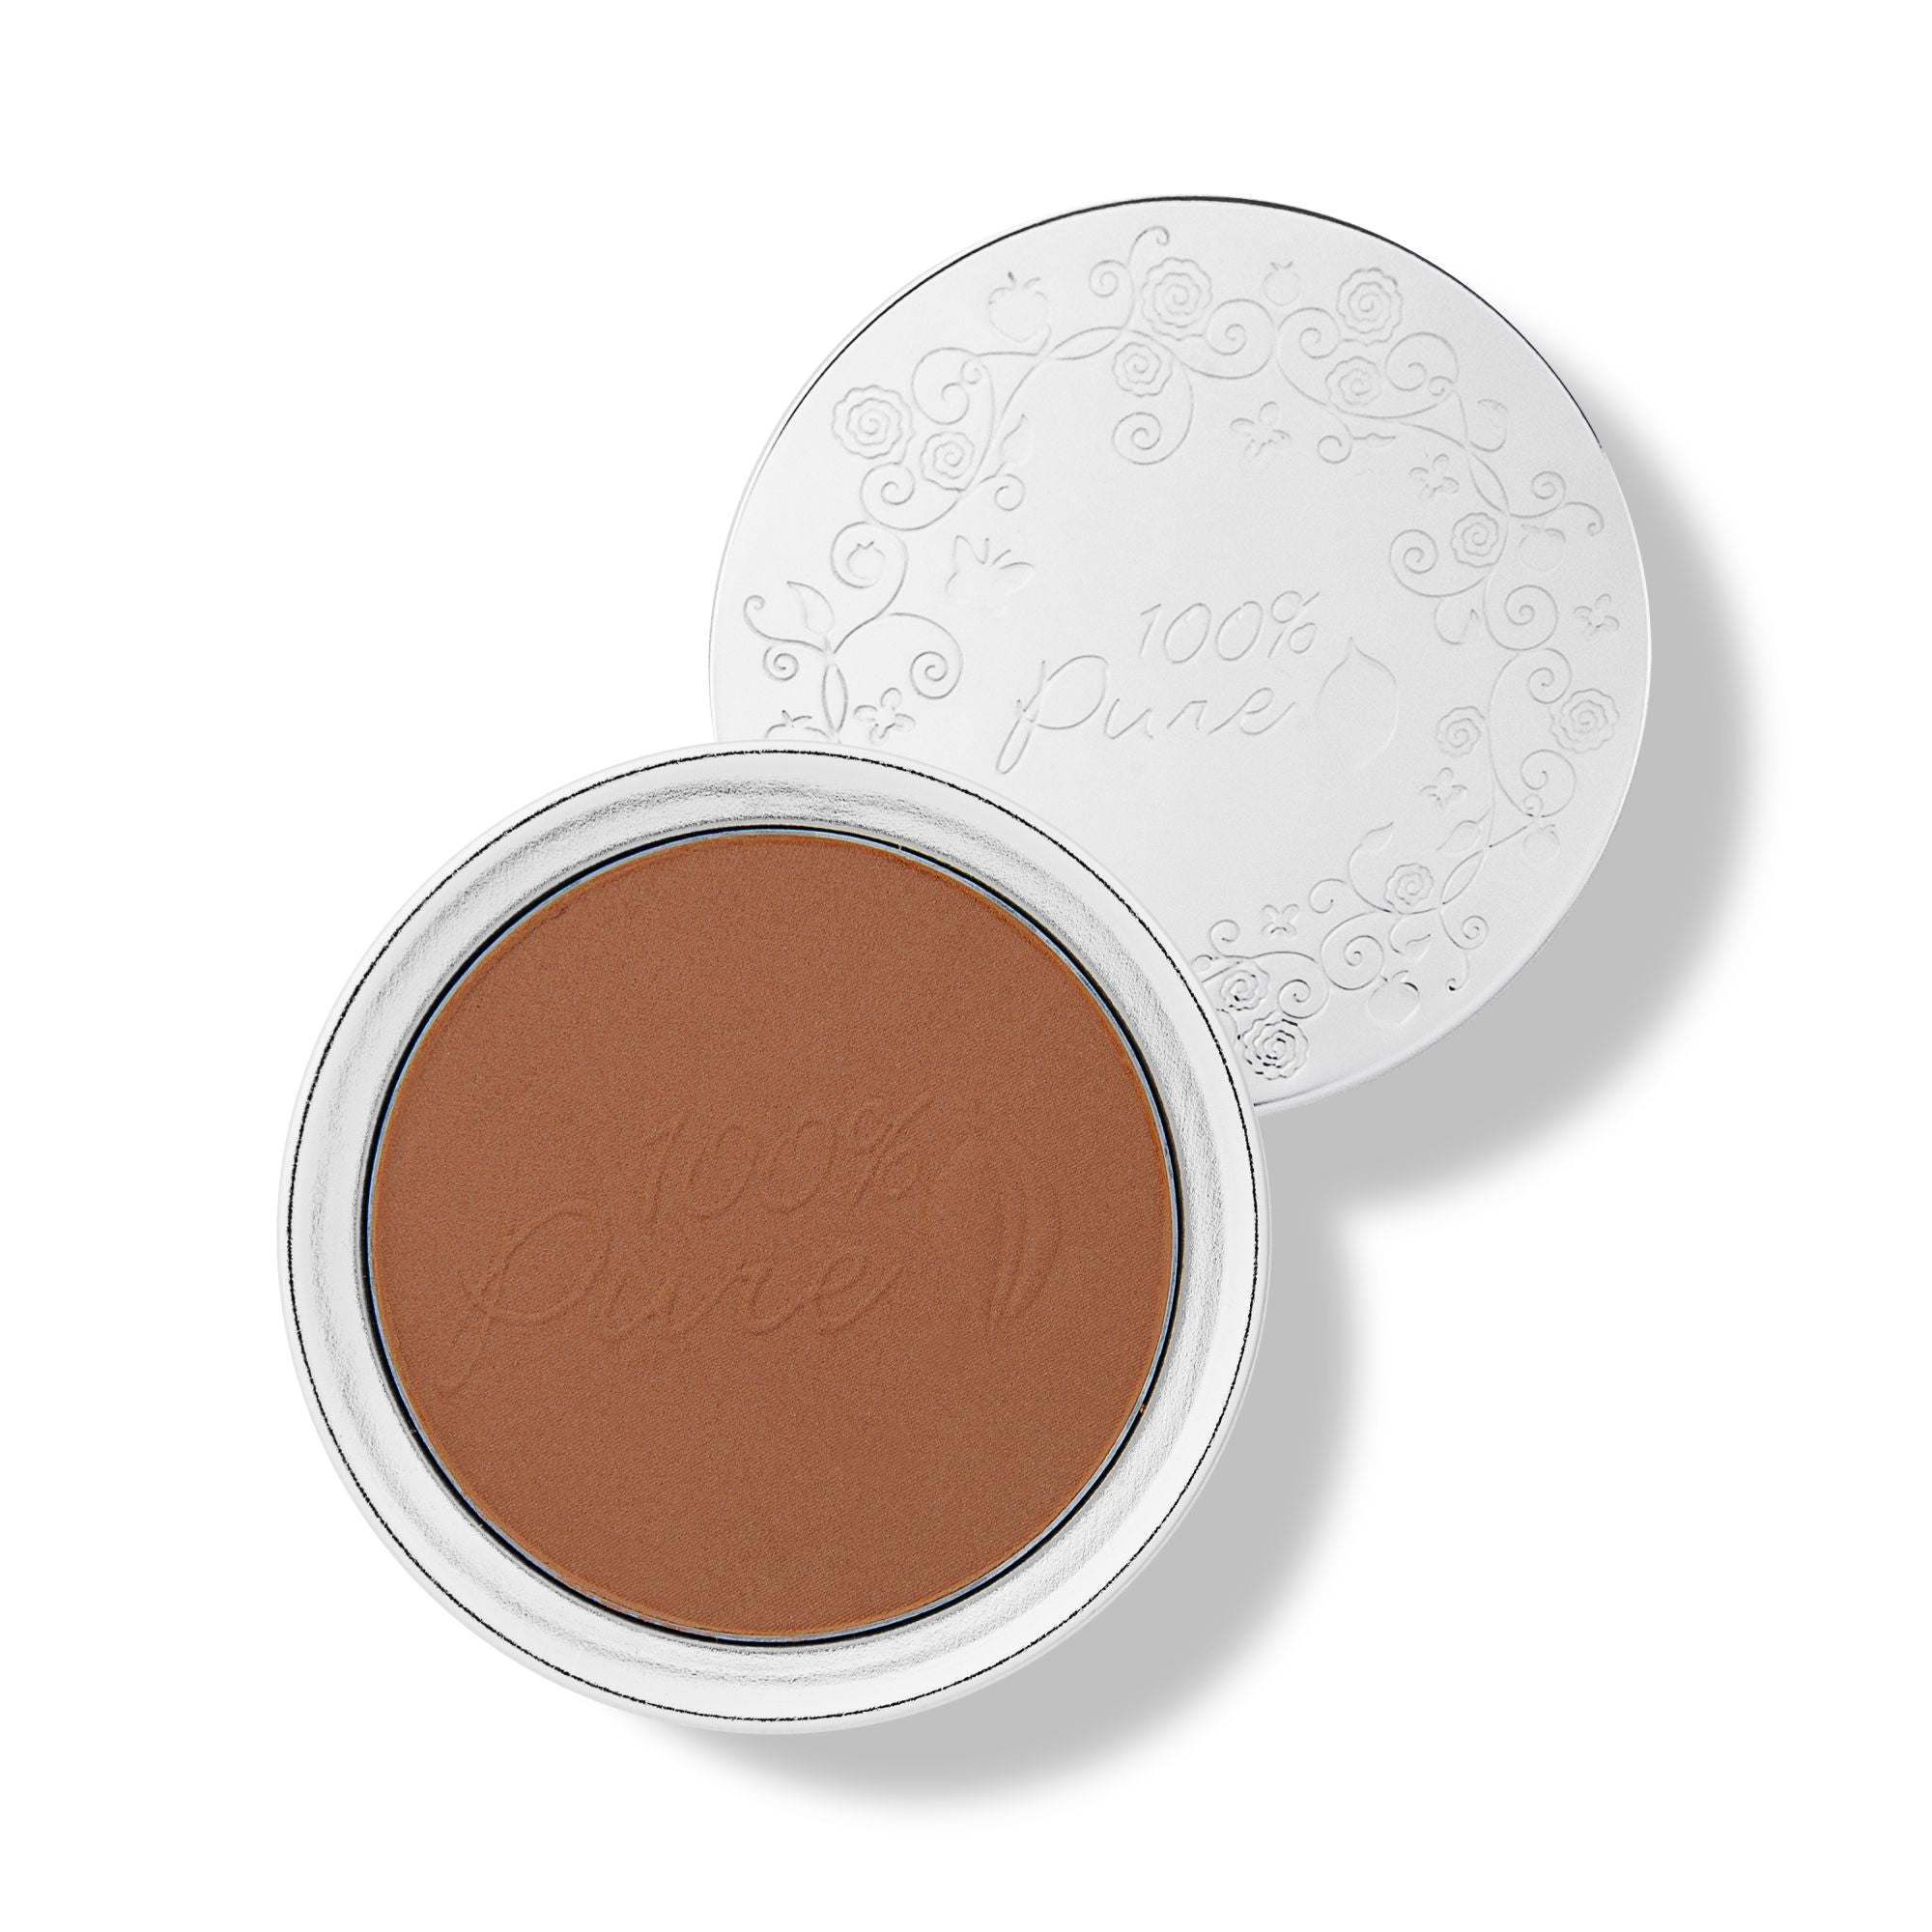 Fruit Pigmented® Powder Foundation - Cocoa